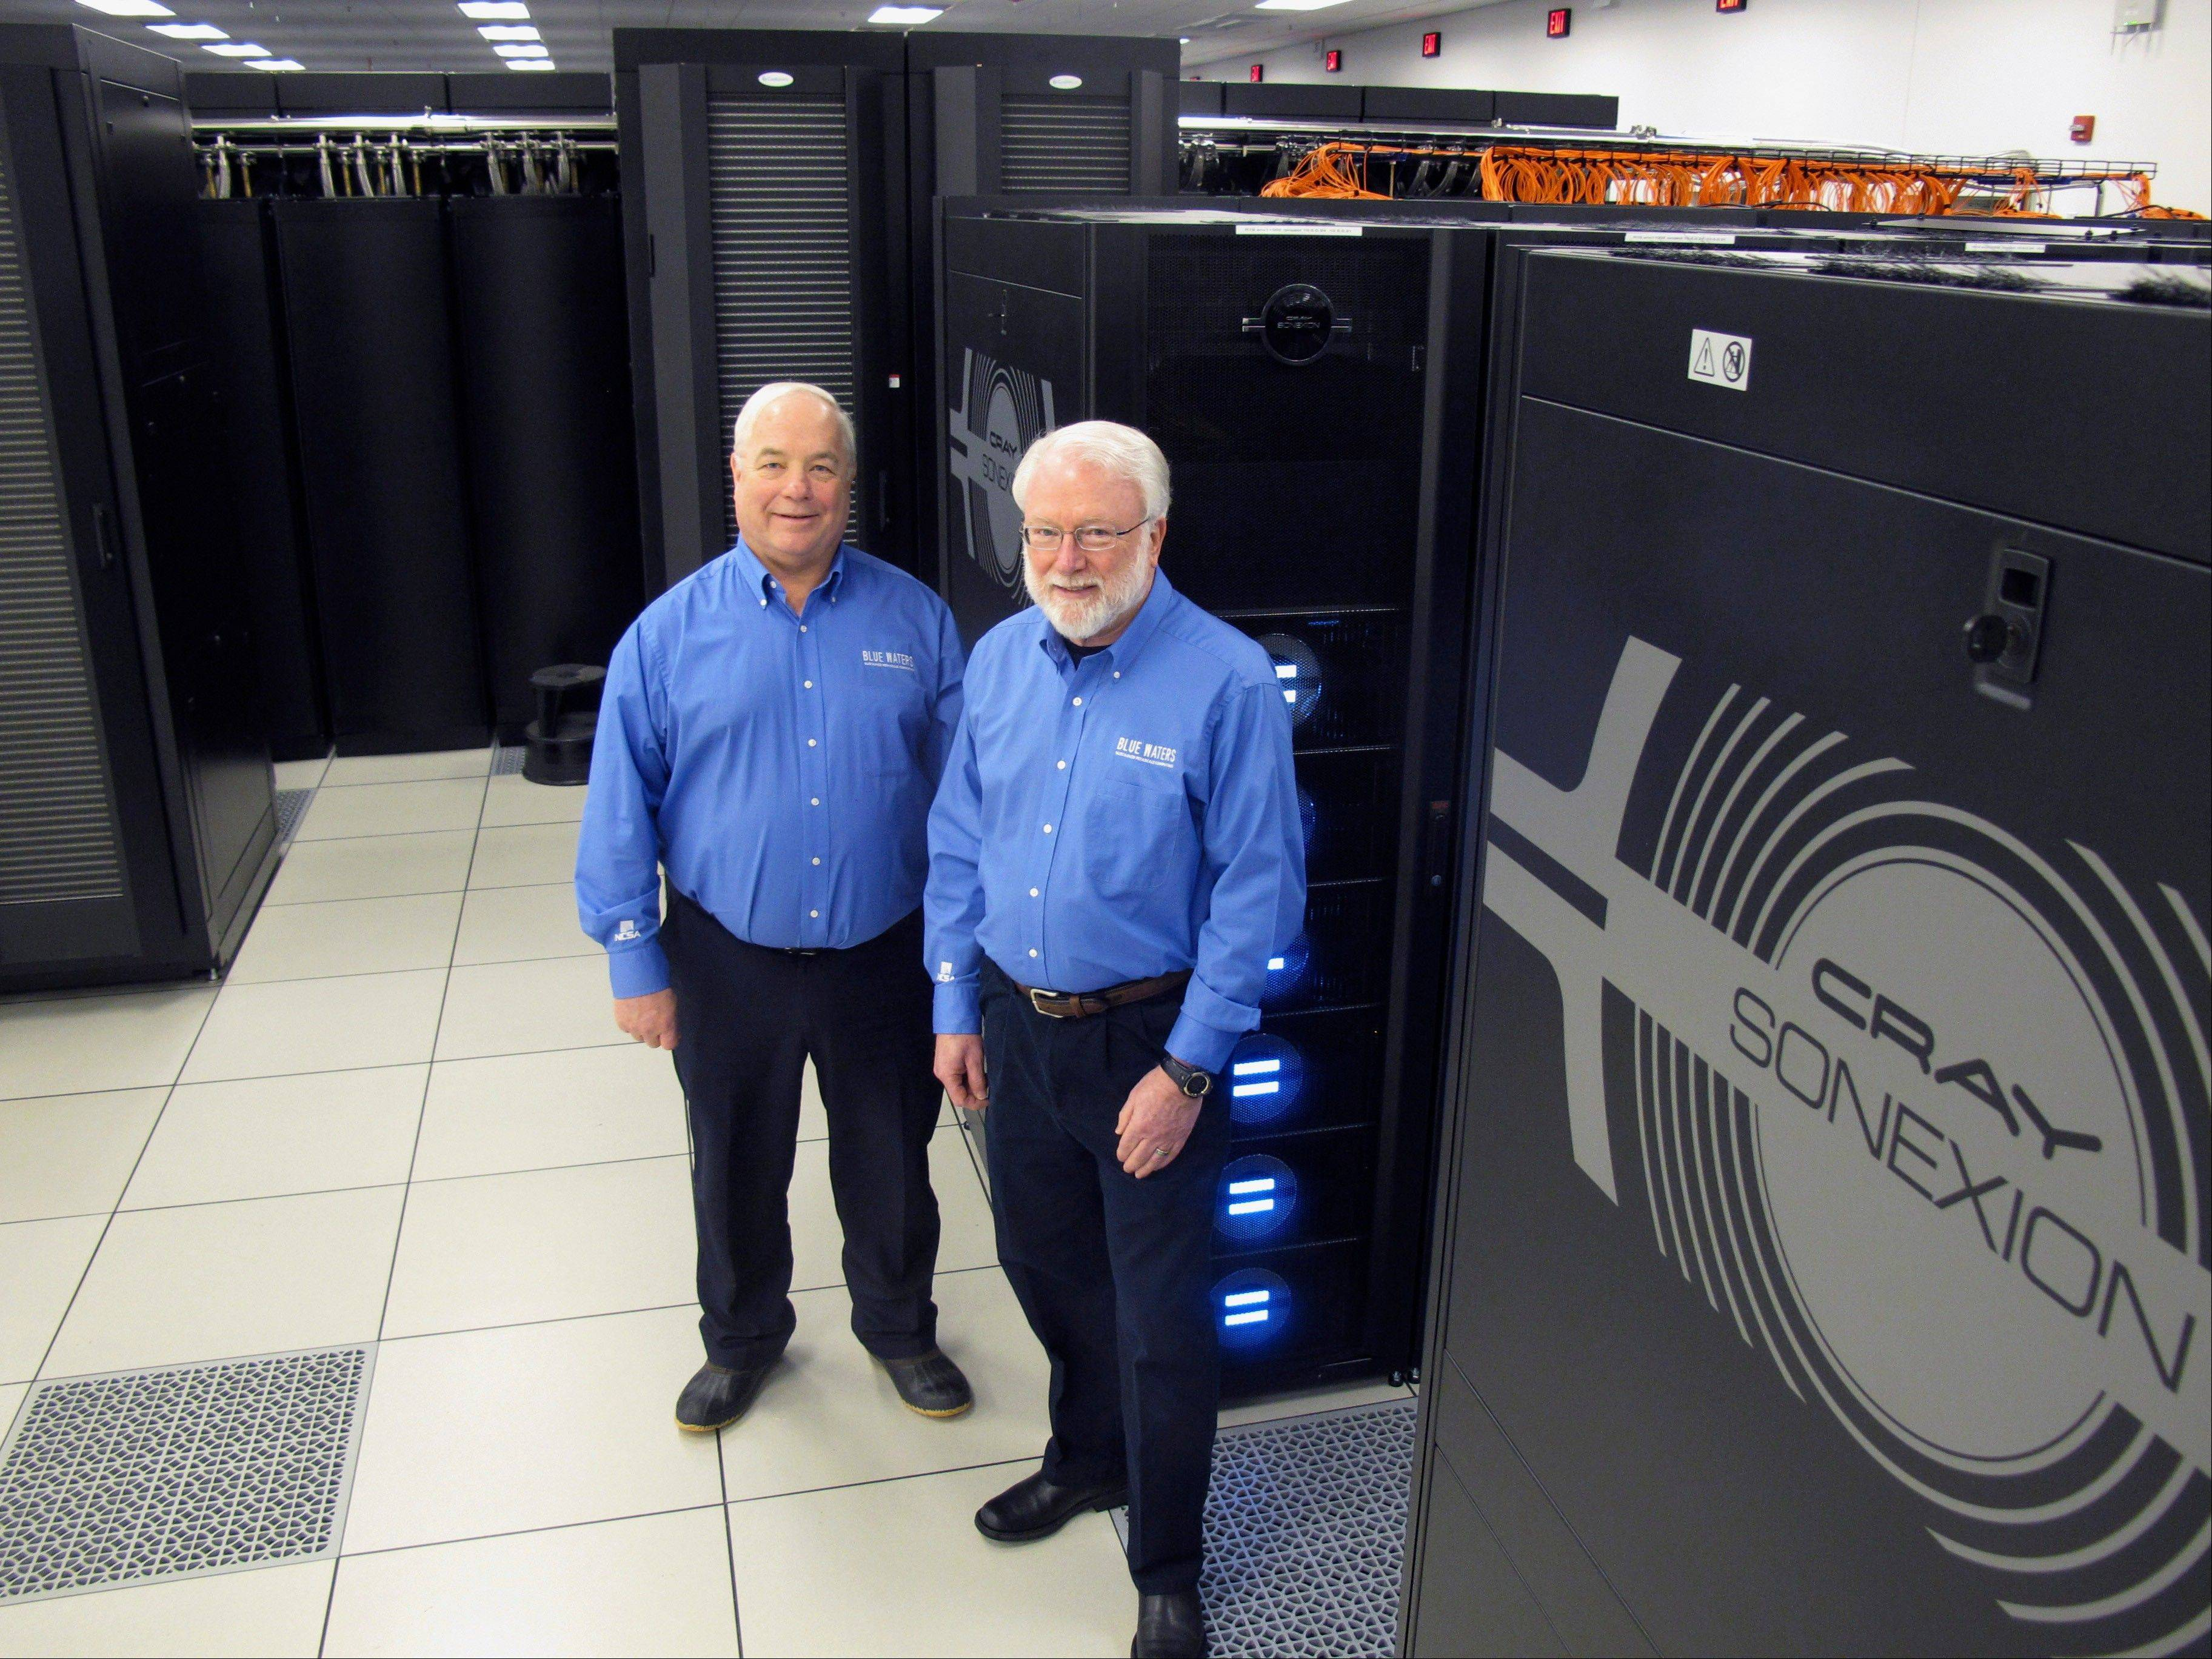 Blue Waters project director Bill Kramer, left, and National Center for Supercomputing Applications Director Thom Dunning pose alongside the storage system for the Blue Waters supercomputer at the University of Illinois in Champaign.